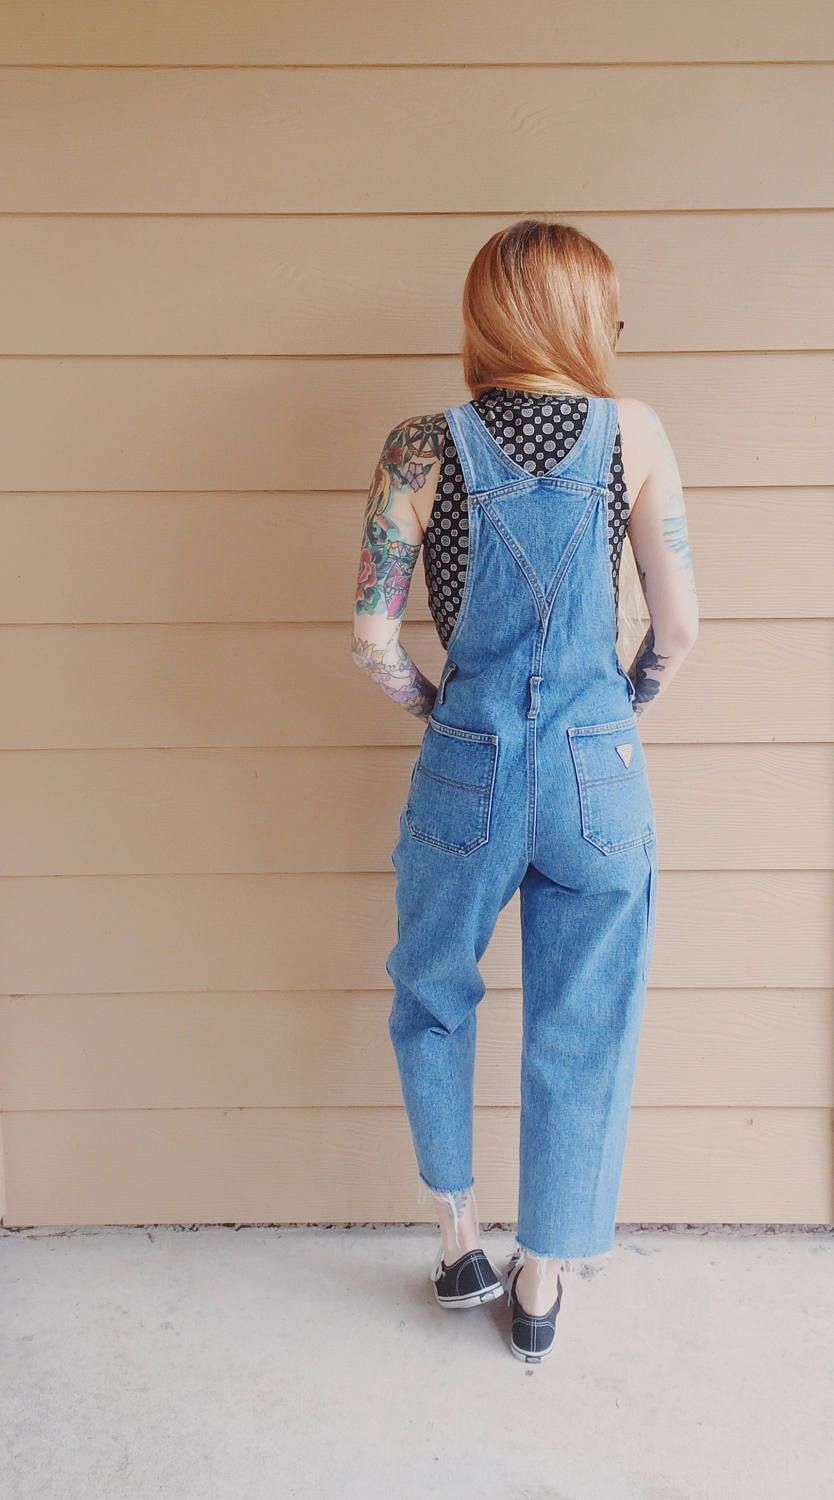 ecc1593033e XS Guess Jeans Perfect Fit Skinny Leg Vintage Denim Jean Overalls Dungarees     Women s size 24 25 1 2 Small S